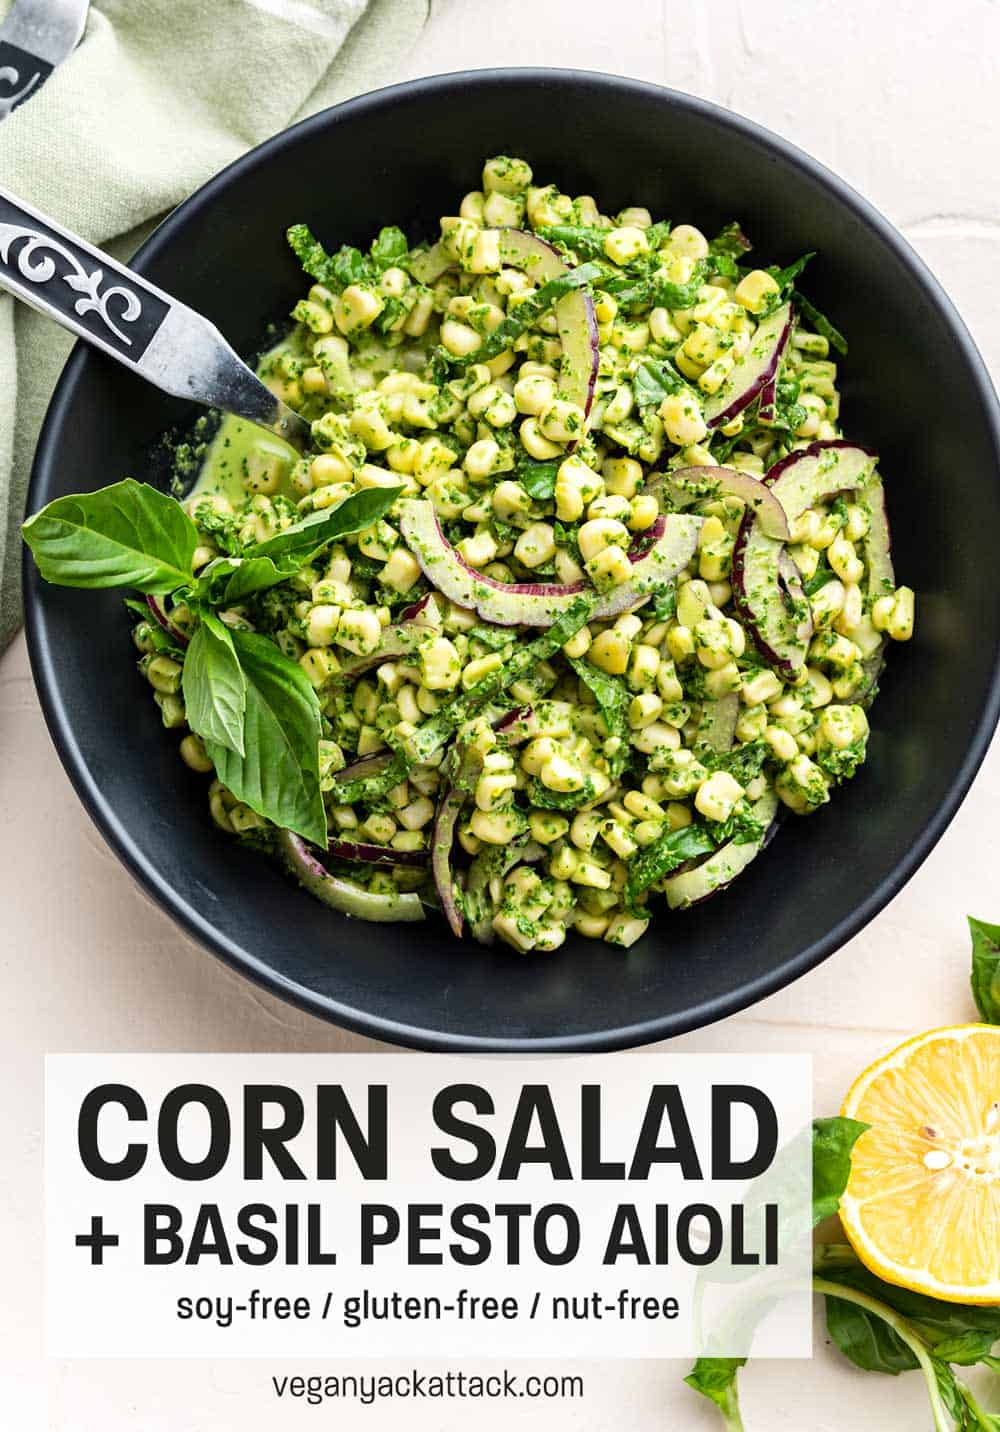 Large black bowl filled with Summer corn salad and basil pesto aioli with tongs and linen nearby